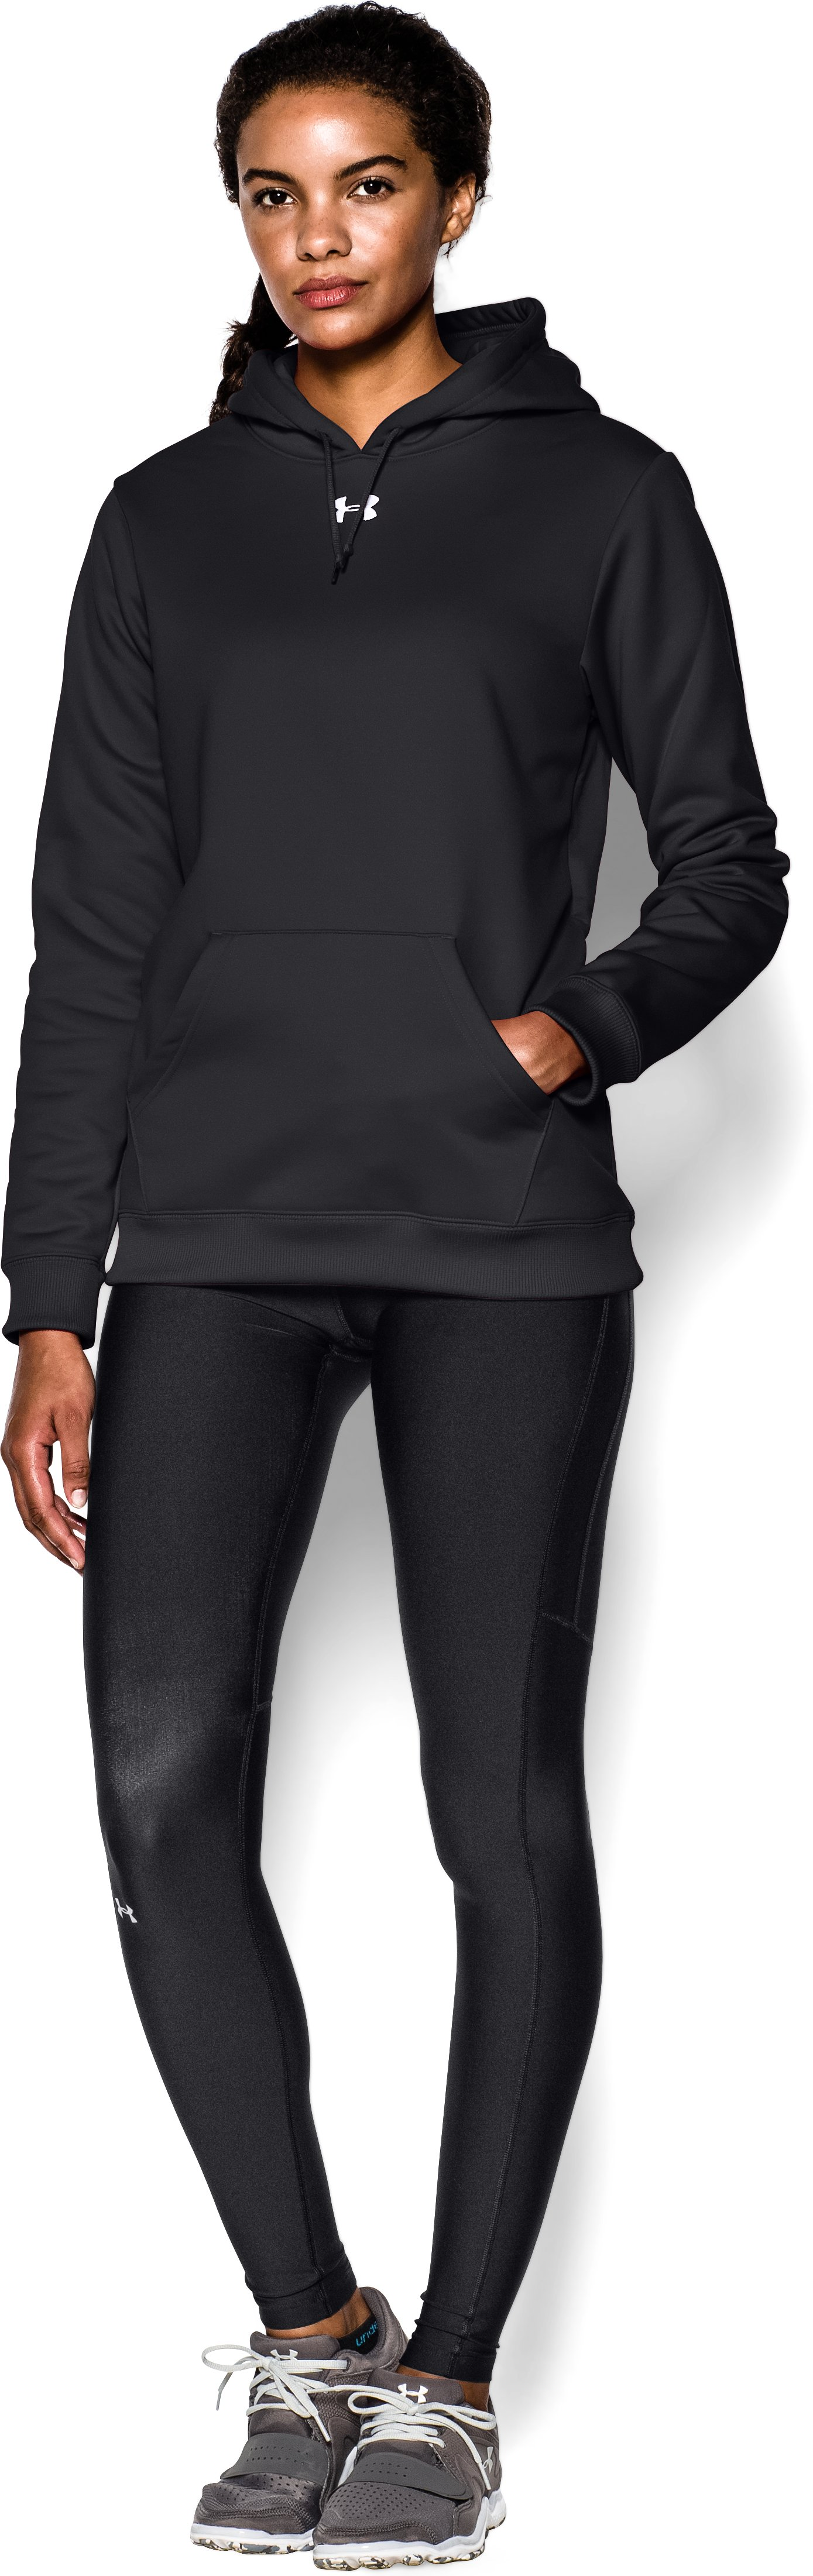 Women's Armour® Fleece Team Hoodie, Black , zoomed image